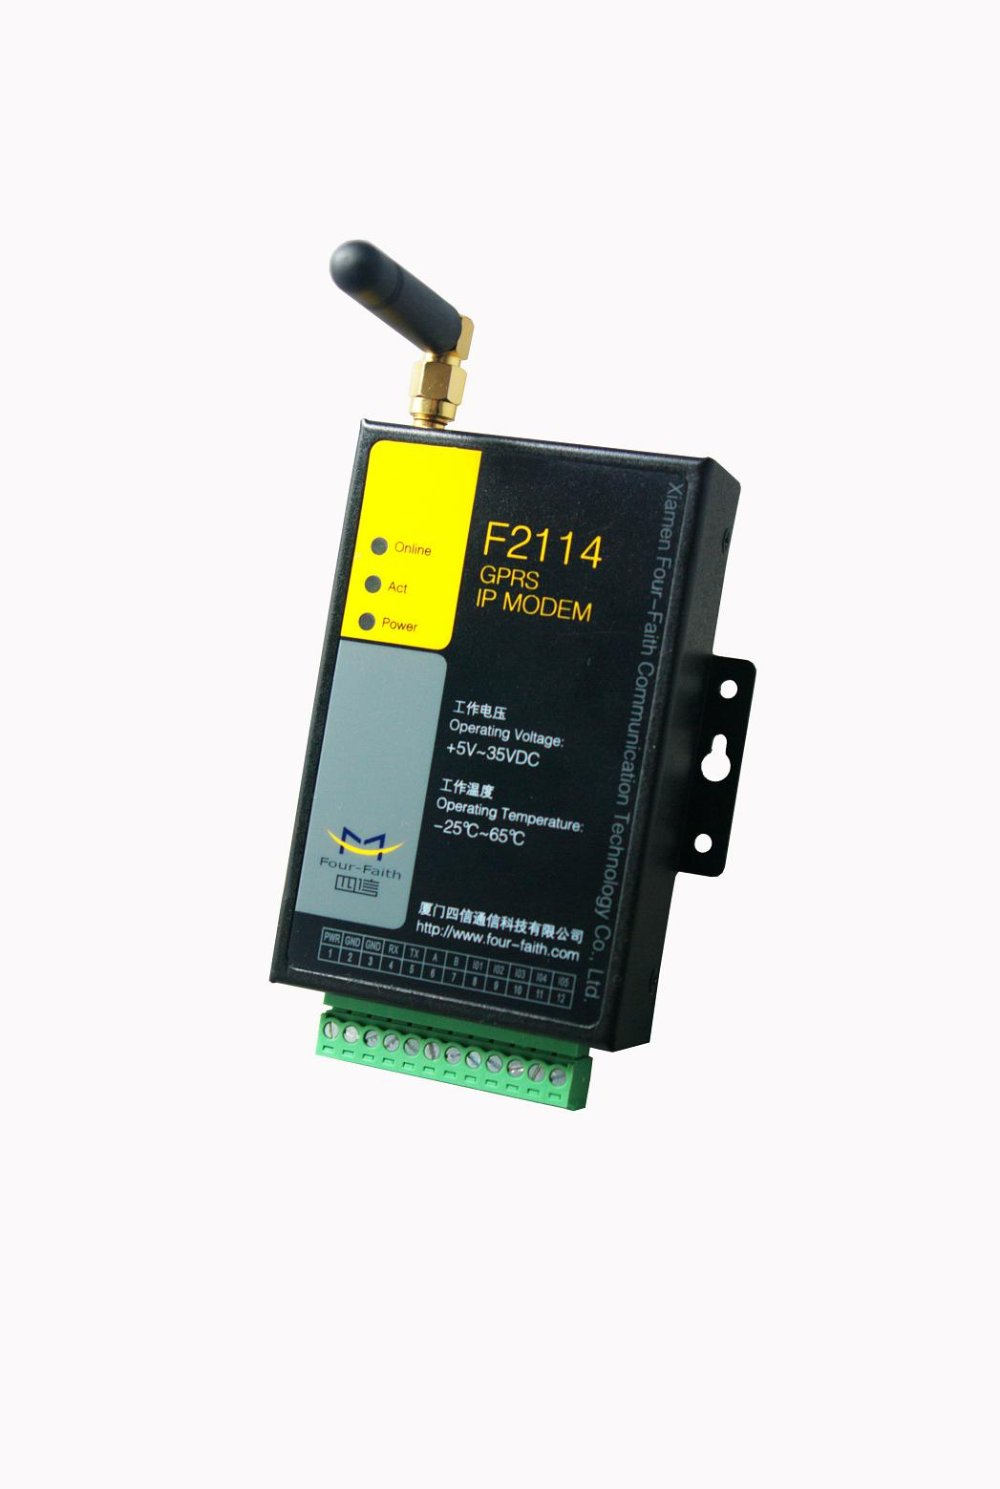 Wireless Industrail Grade 3G Modbus Modem I/O For Data Transmission PLC,Datalogger,Controller F2414P